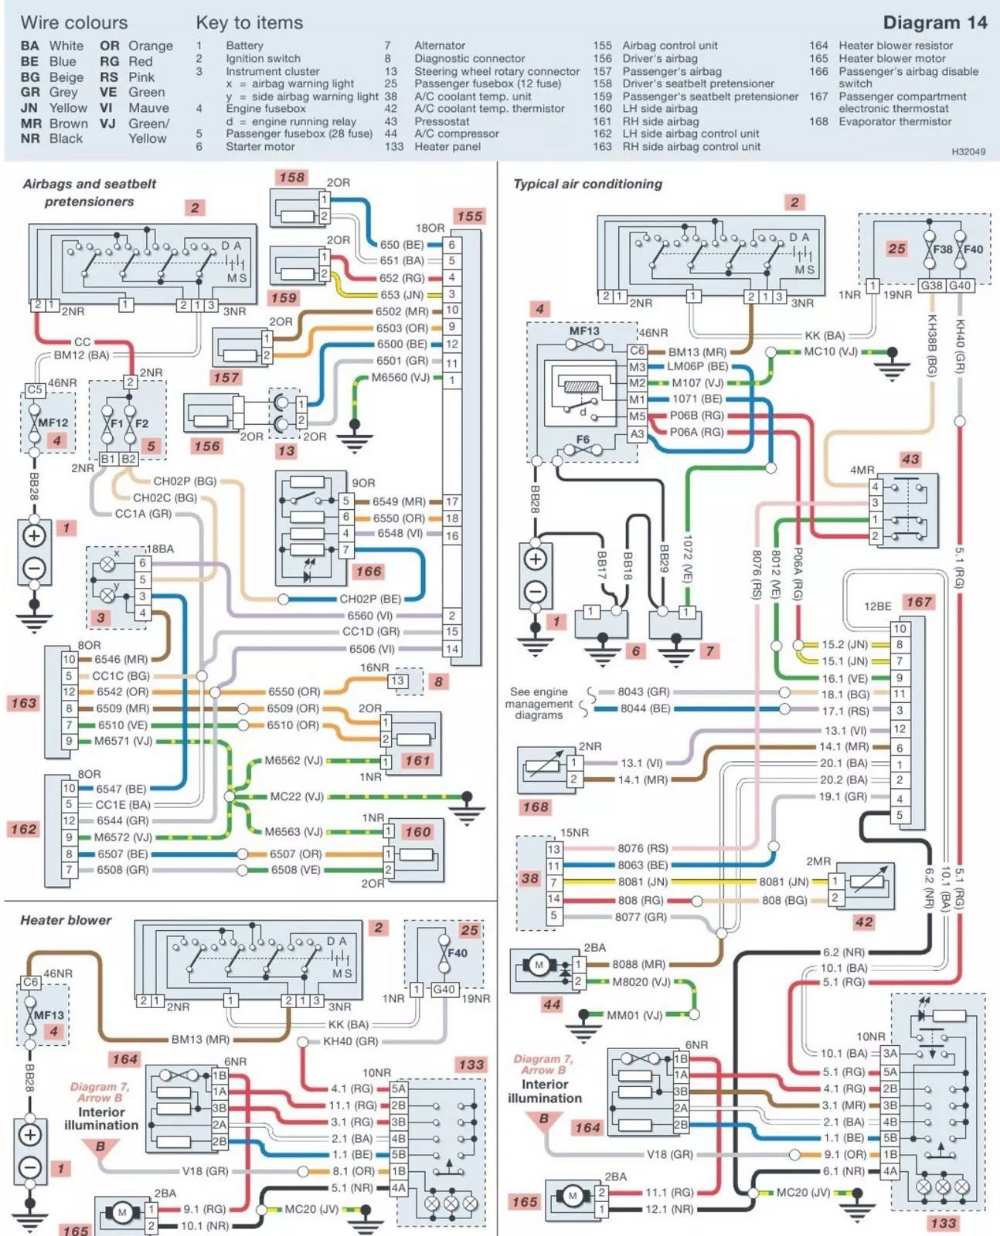 Peugeot 407 Hdi 2 0 Litre Wiring Diagram Google Search